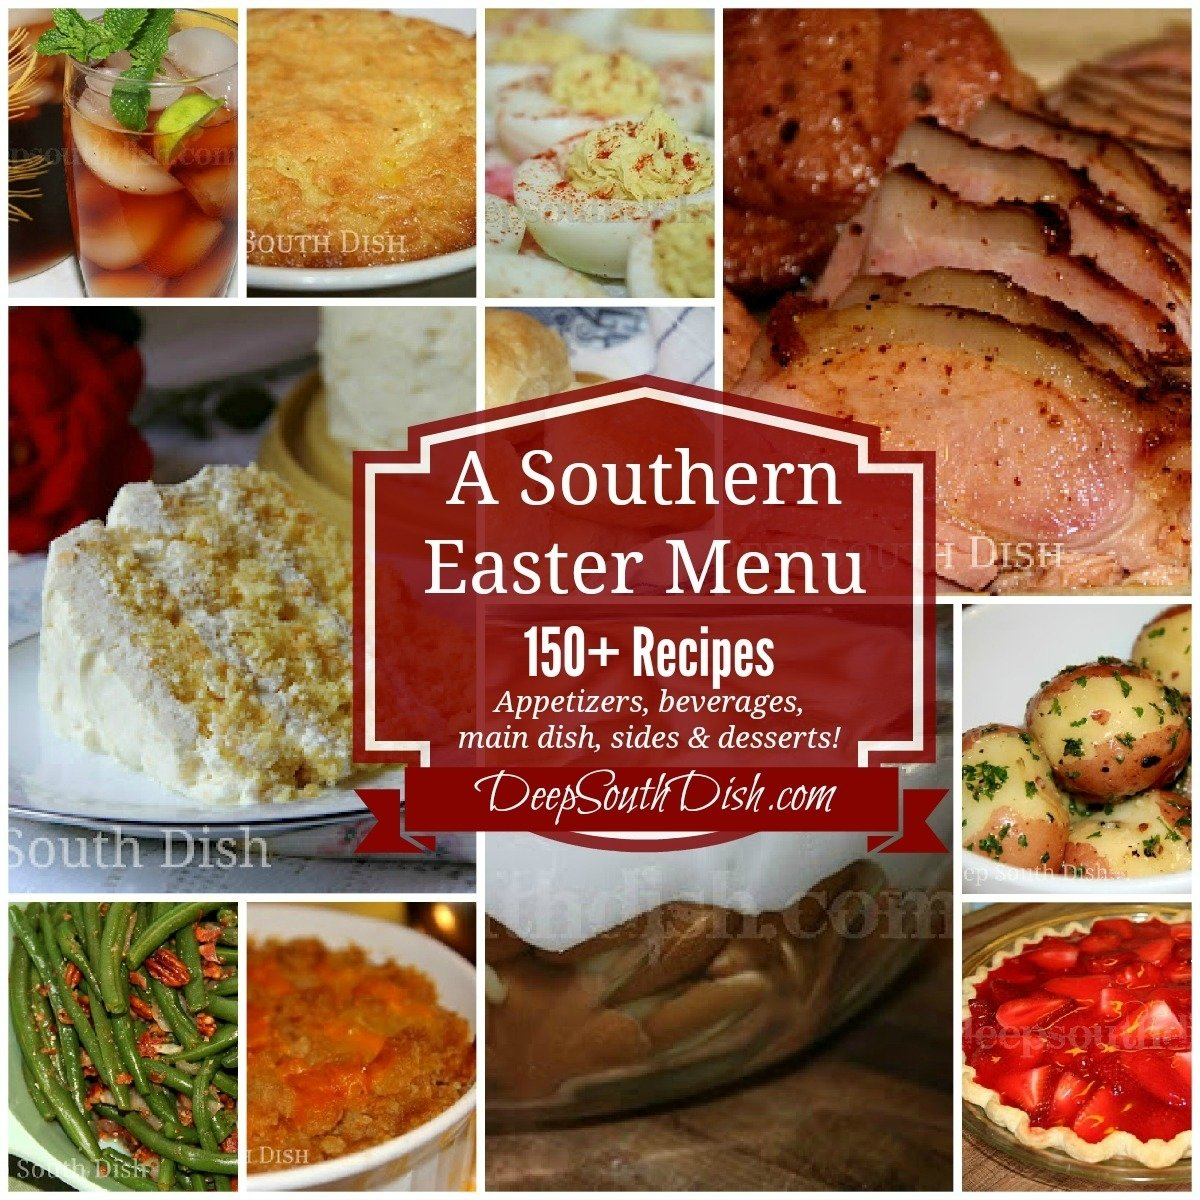 10 Best Quick Soul Food Dinner Ideas deep south dish southern easter menu ideas and recipes 7 2020